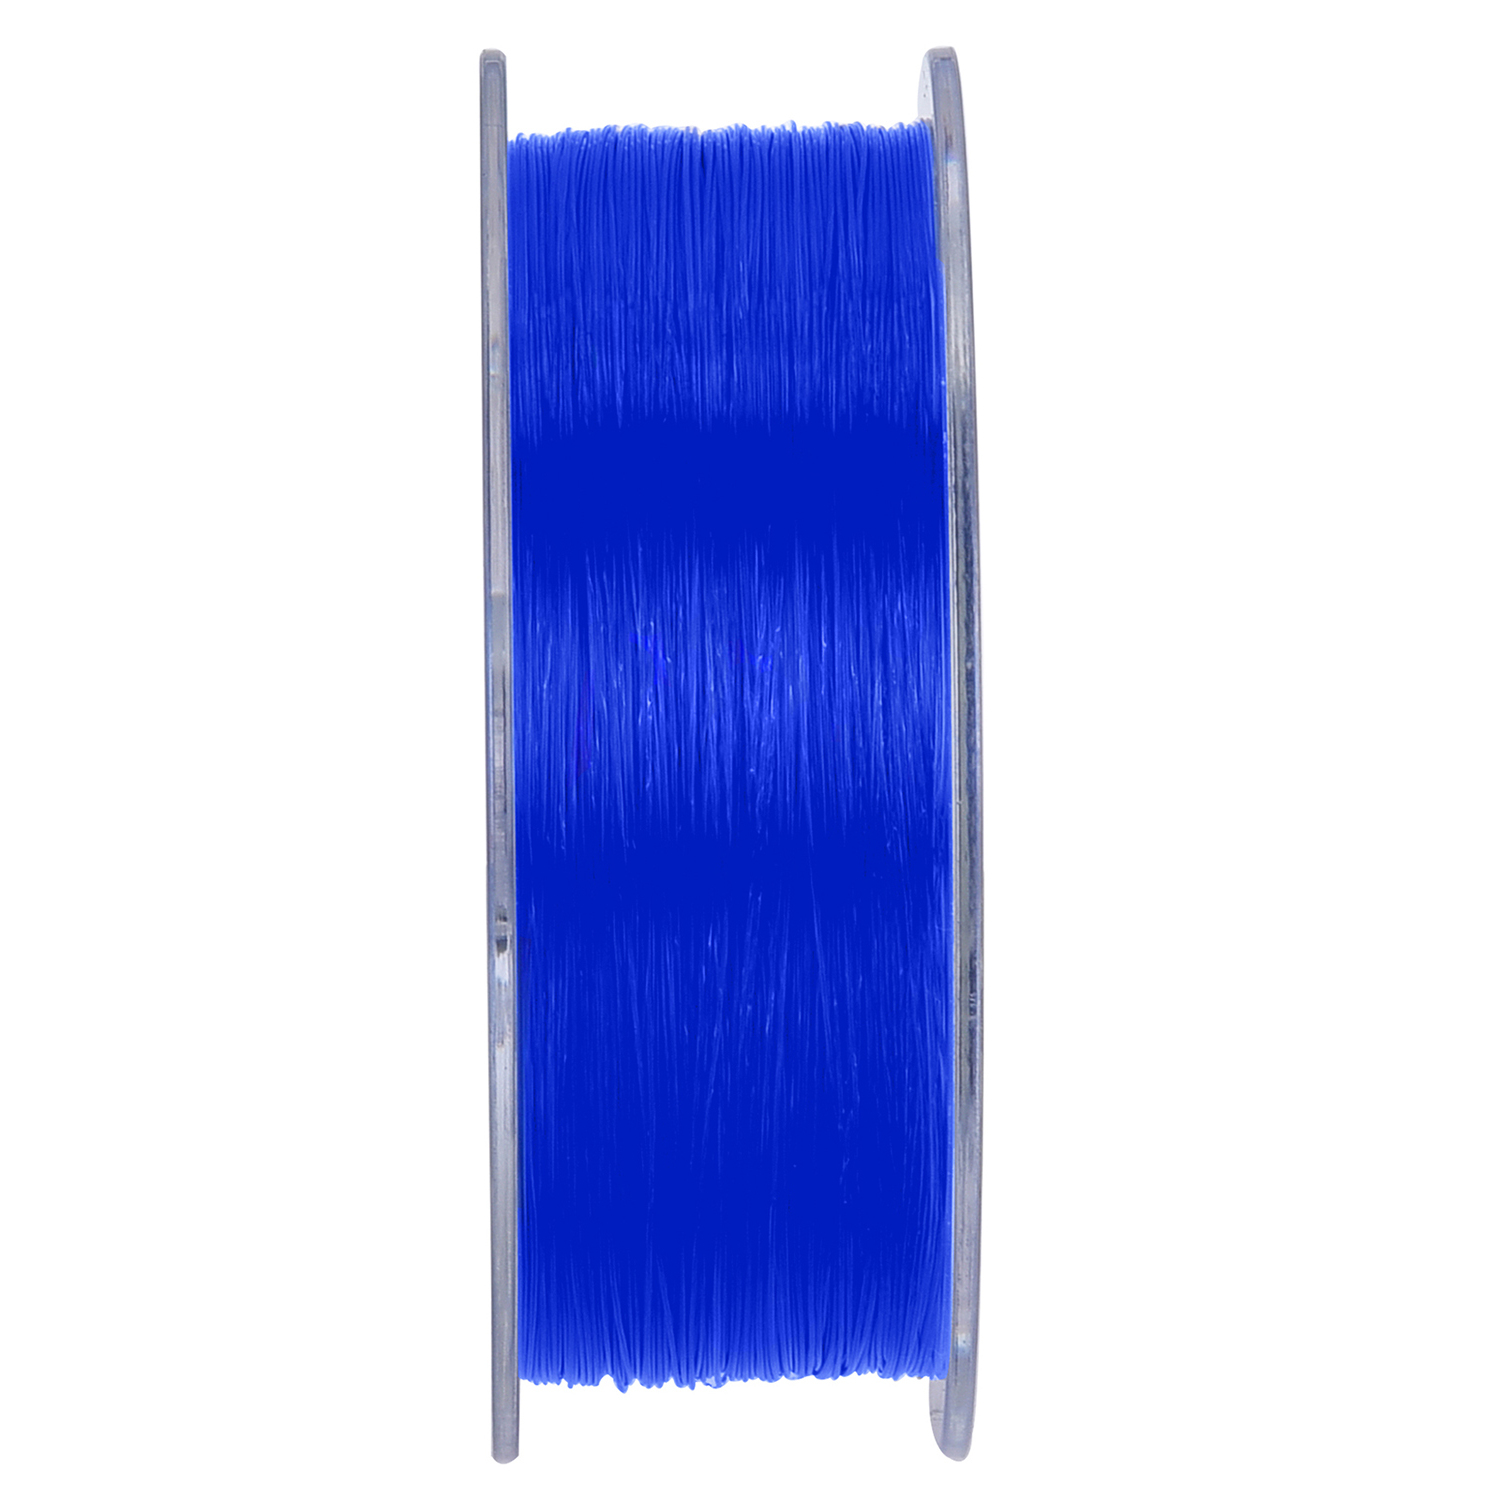 KastKing Blue Premium Monofilament Fishing Line